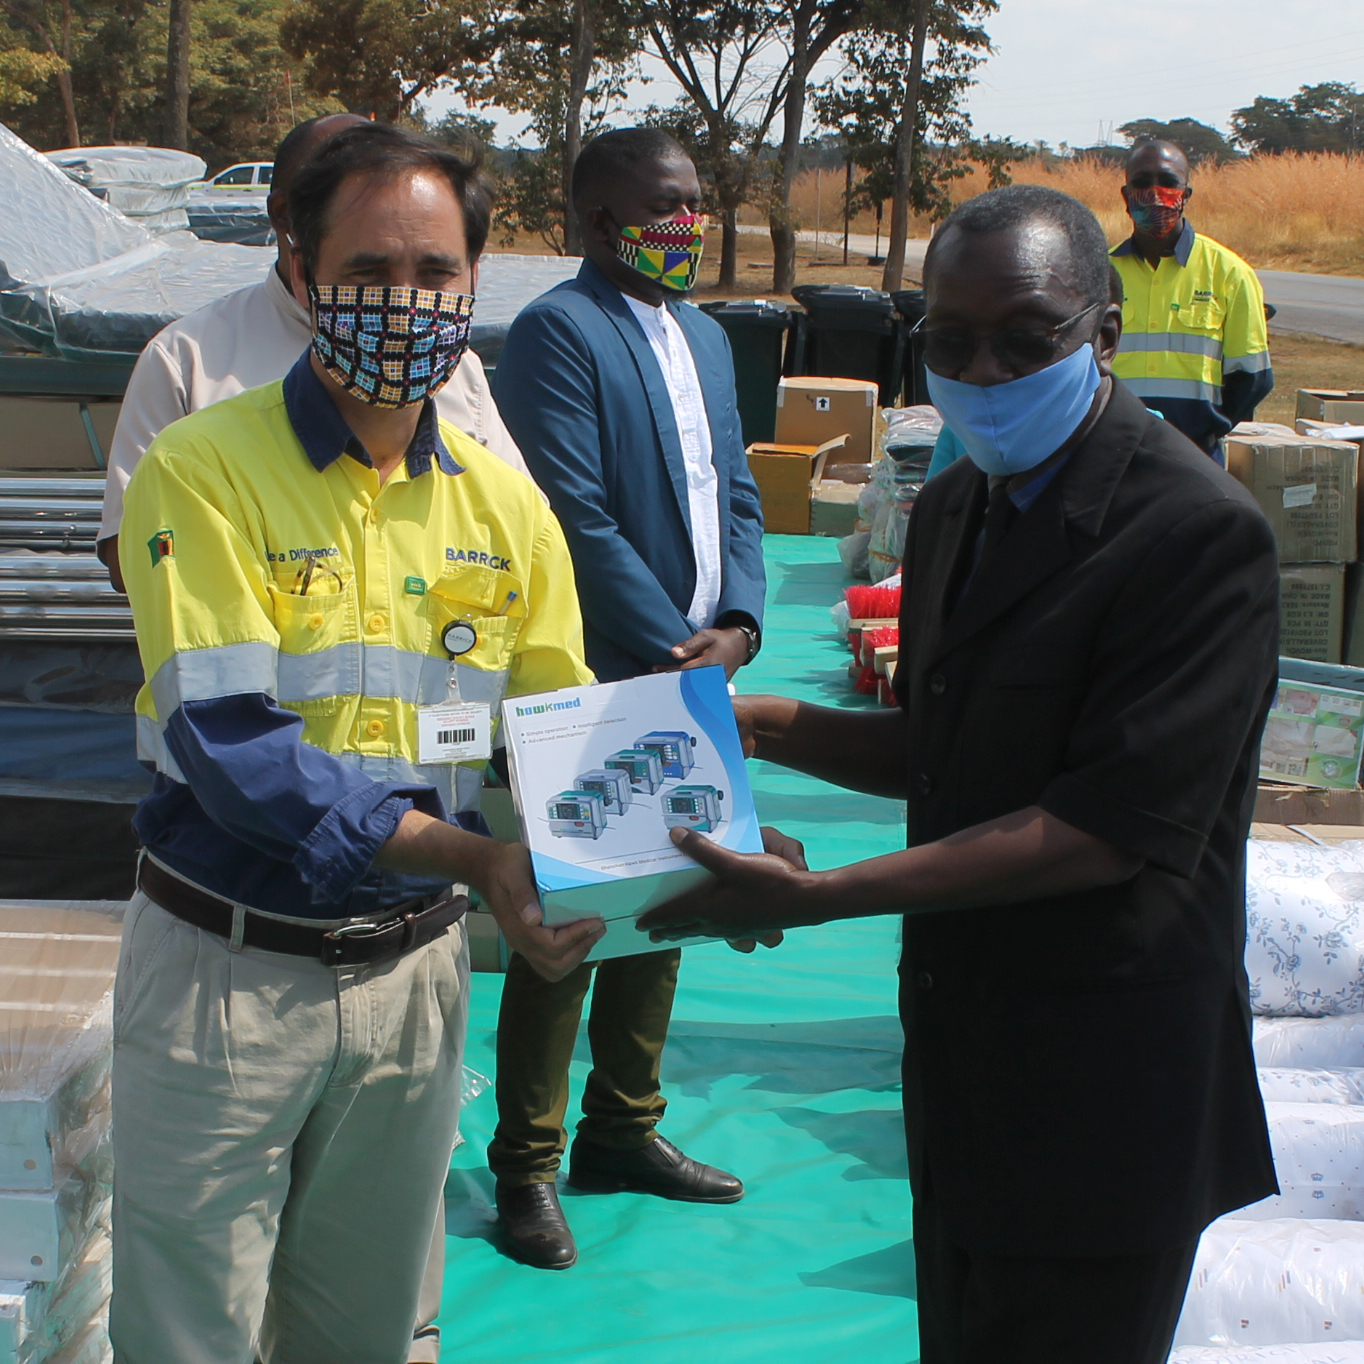 Barrick Lumwana handed over their second batch of Covid-19 medical supplies and equipment to the North Western Provincial and District Administration on May 26, 2020, during a colourful ceremony held at Lumwana Copper Mine in Zambia.